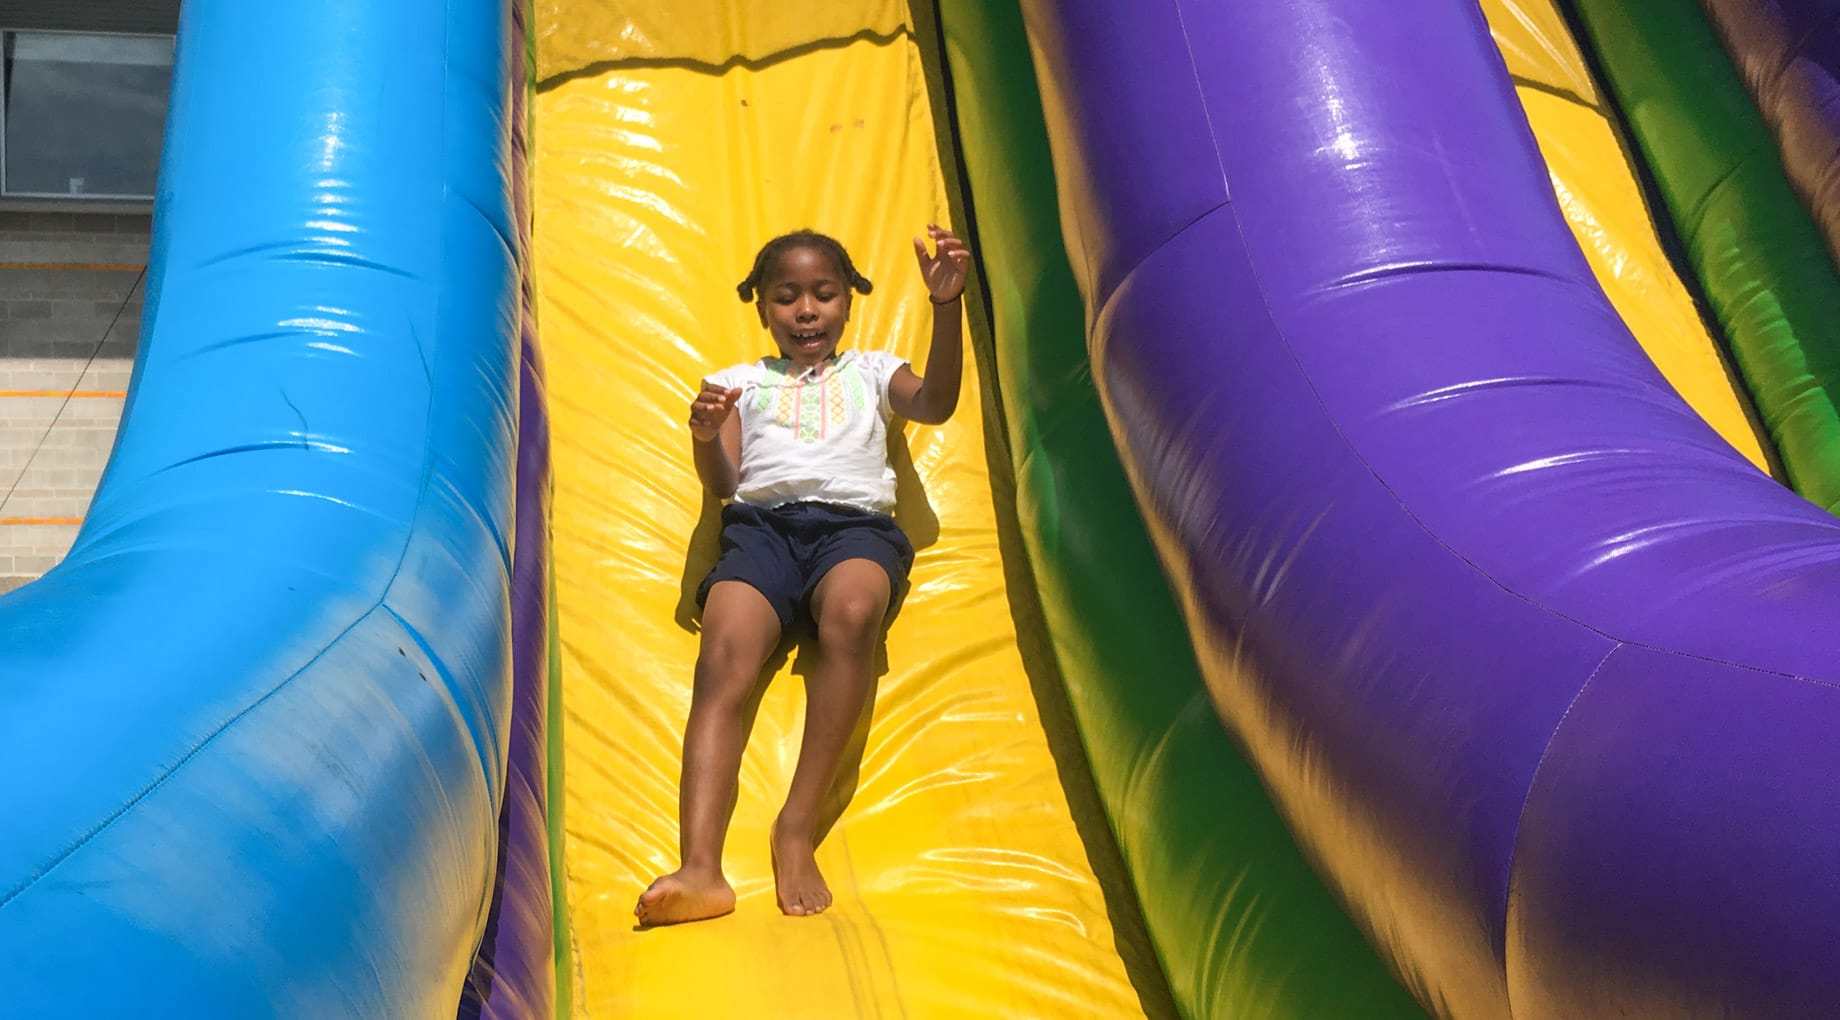 Girl going down inflatable slide